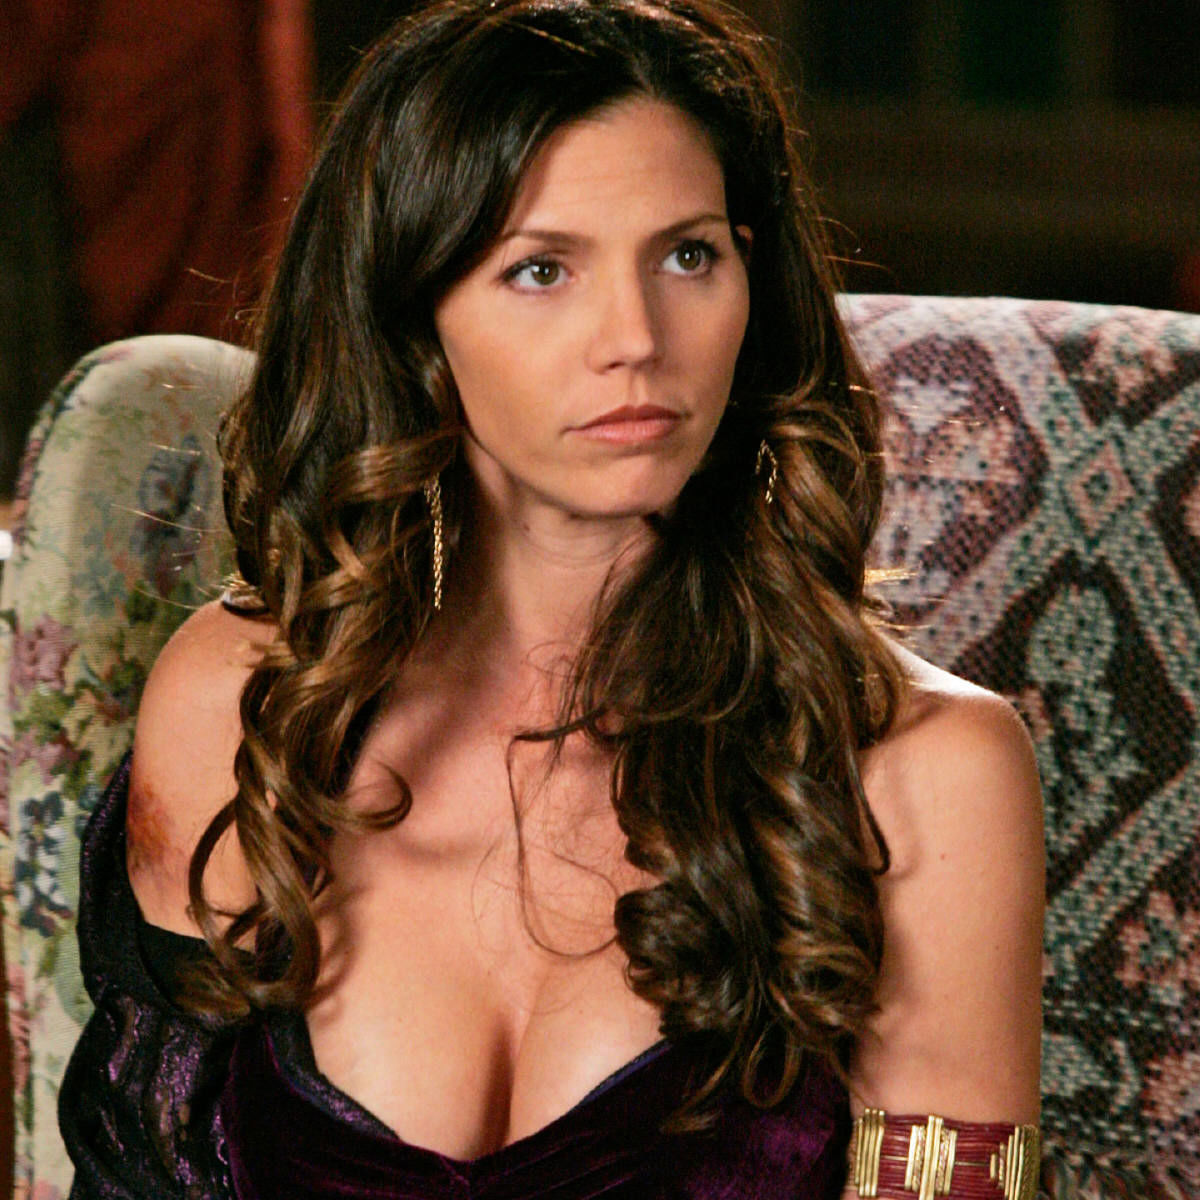 Charisma_Carpenter_0.jpg